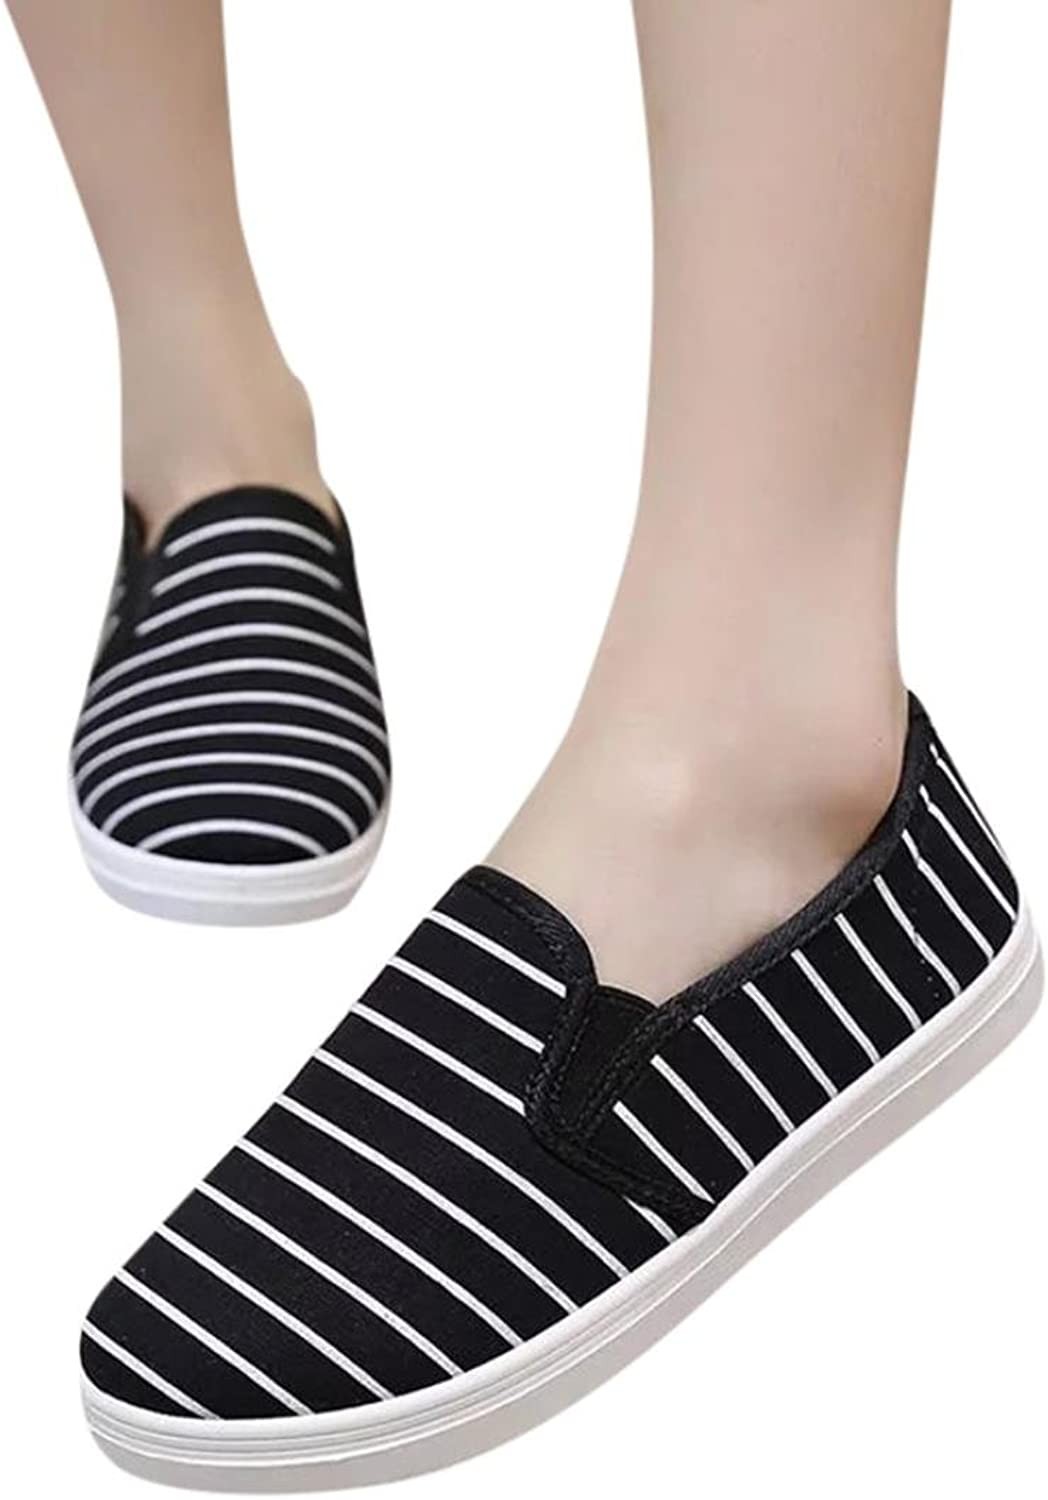 Fheaven (TM) Ladies Striped Canvas Flat Women's shoes Pointed Toe Casual shoes Loafers Bellet Flat shoes Sneakers Black